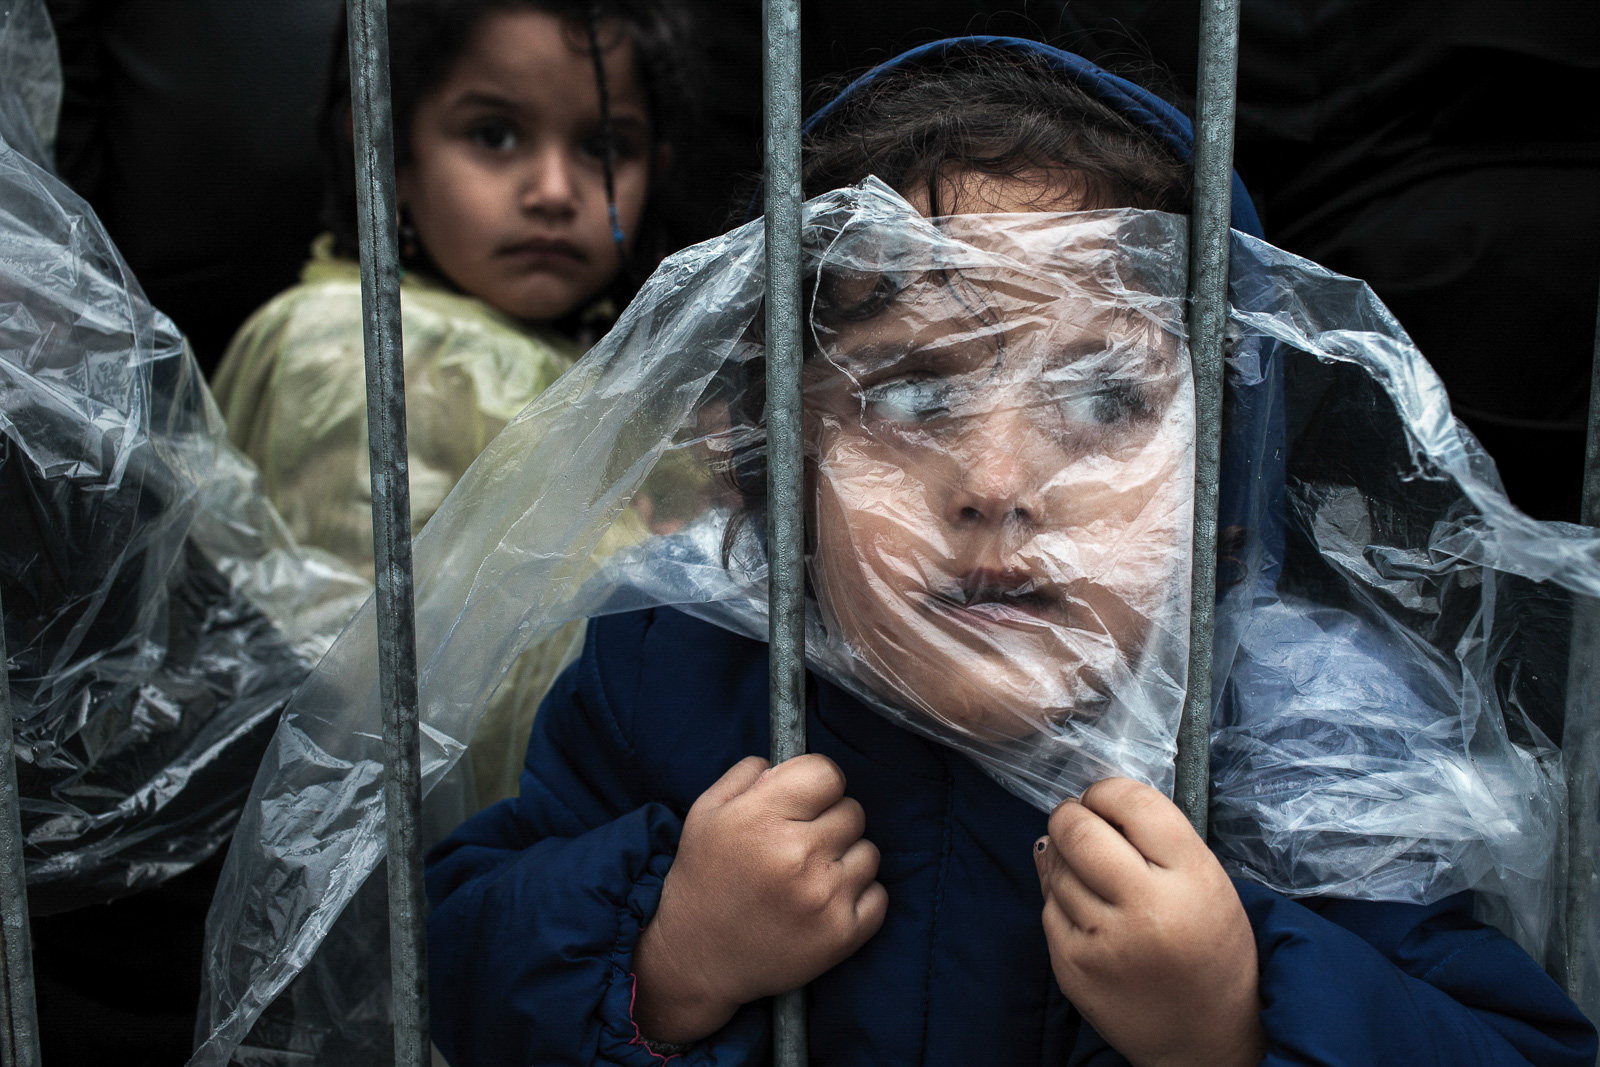 Preševo, Serbia - October 7, 2015: A child refugee is covered with raincoat while she waits in line to get registered in Preševo refugee registration camp. Most of the refugees who crossed Serbia try to continue their route towards Hungary, Croatia, Slovenia and other countries of the European Union.